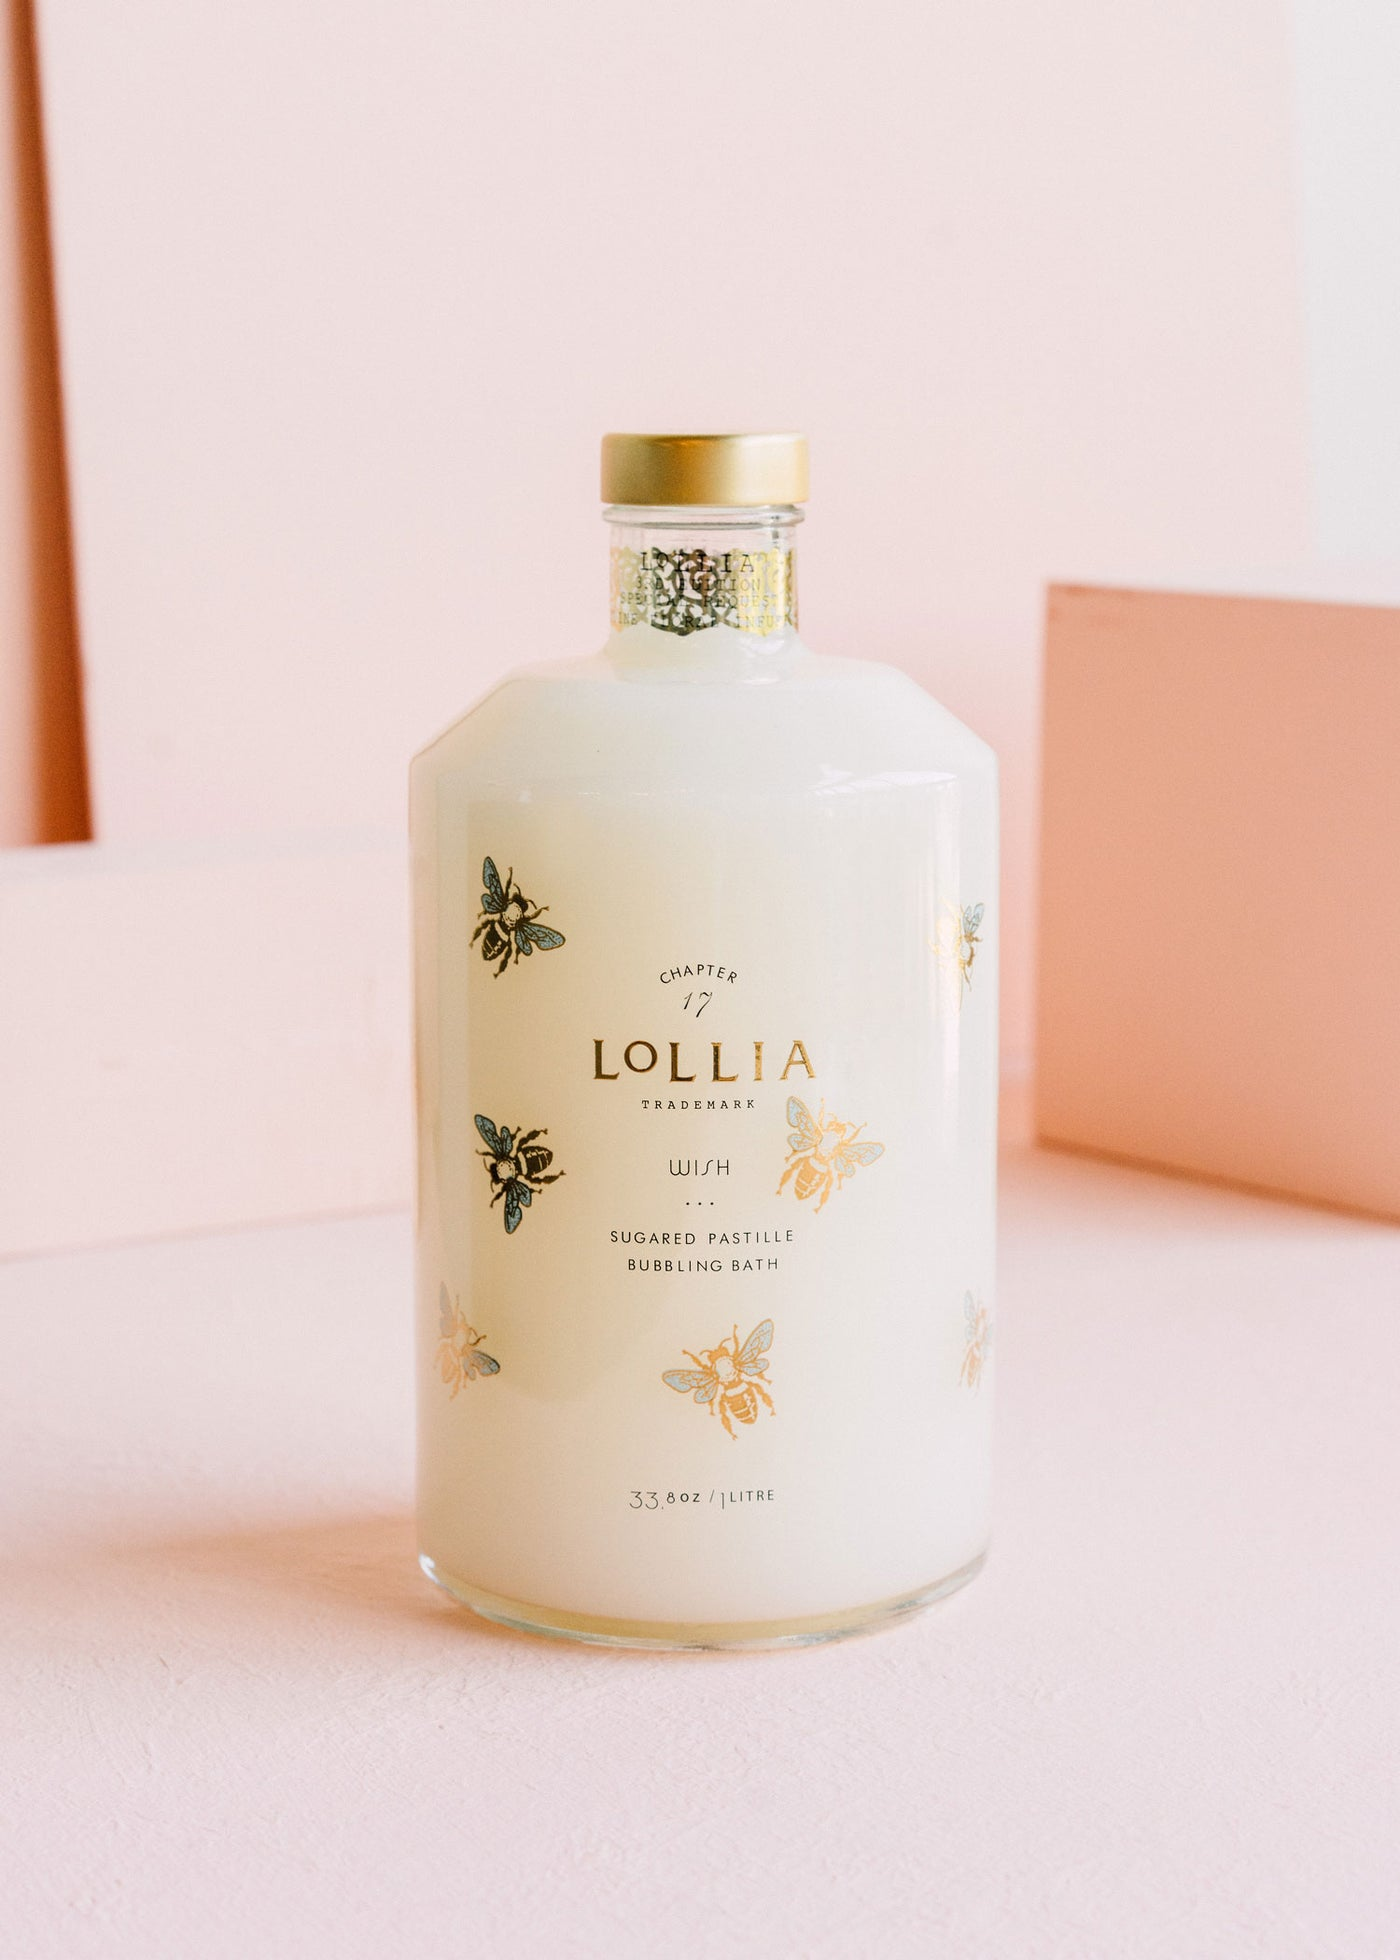 Lollia Wish Perfumed Luxury Bubble Bath Margot Elena